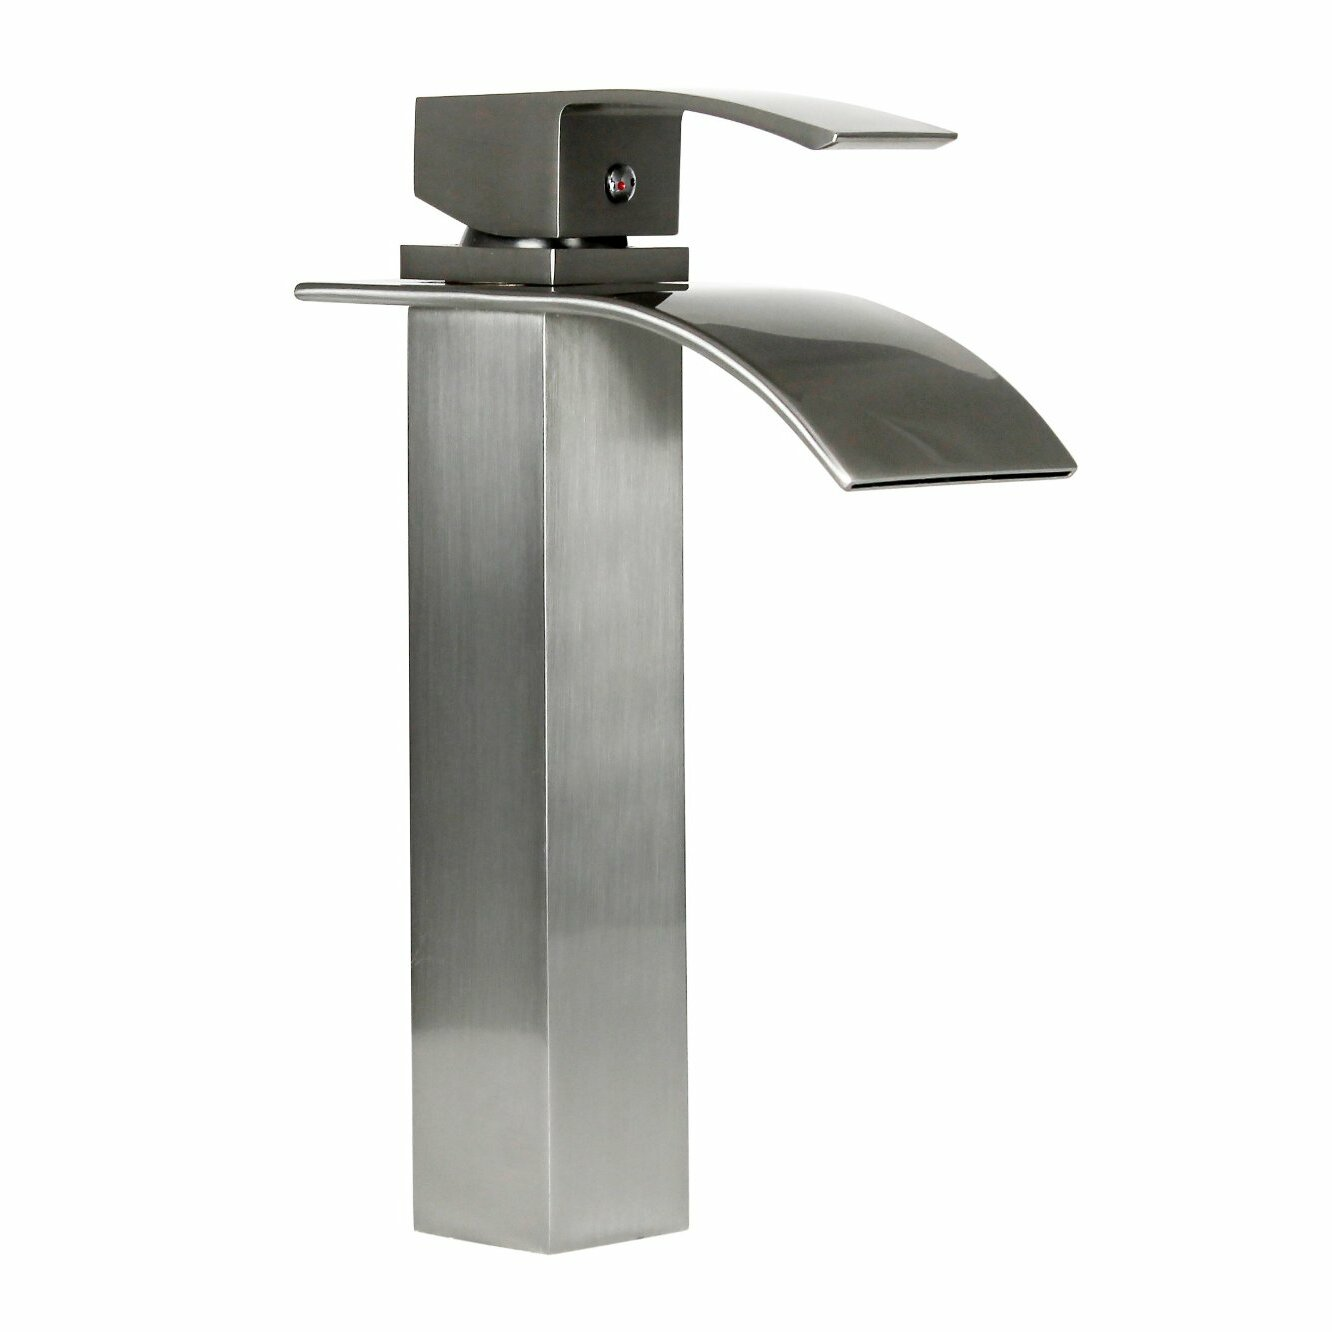 Dyconn Faucet Wye Modern Bathroom Vessel Sink Reviews Wayfair